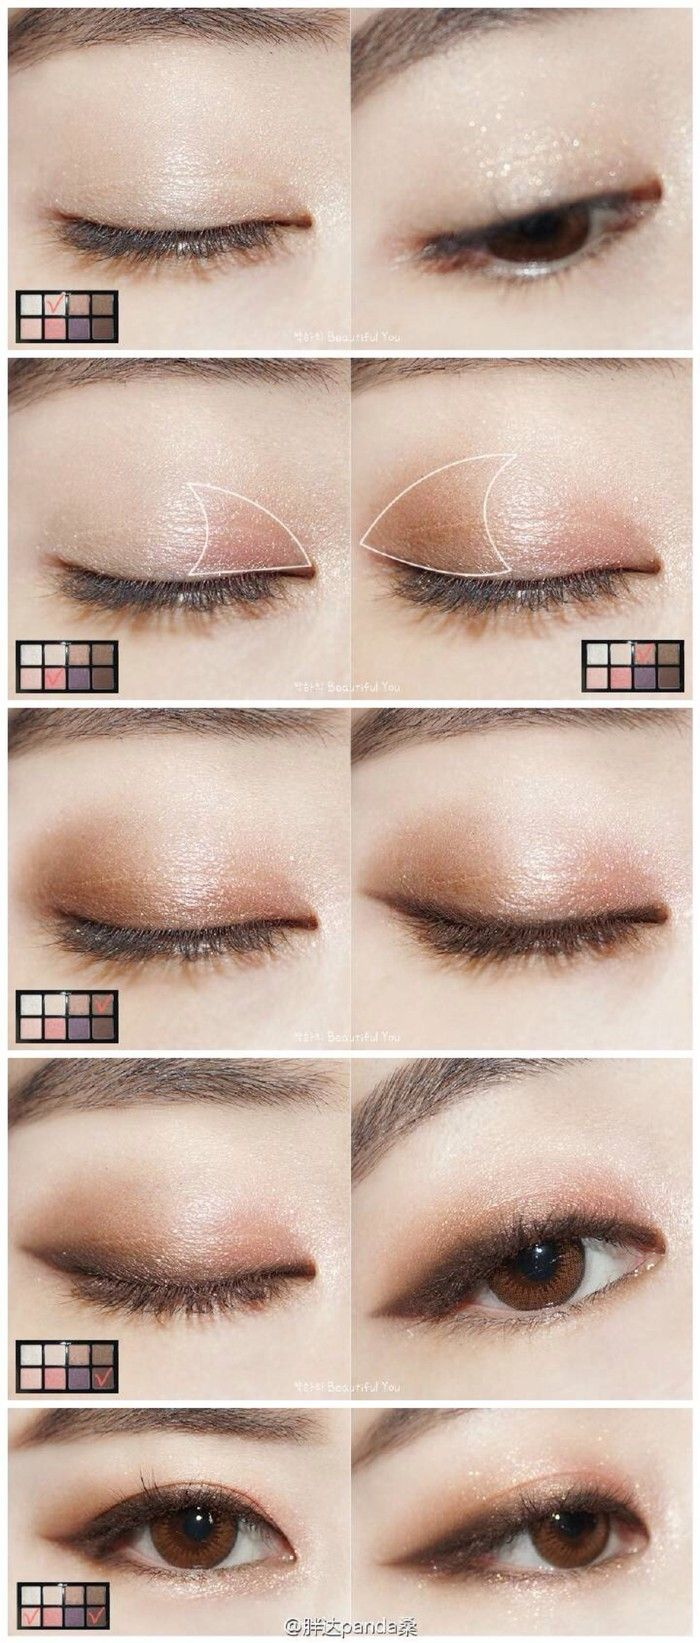 Makeup Ideas 2017 2018 Nice Flashmode Middle East Middle East S Leading Fashion Modeling Luxury Agency Featuring Fashion Beauty Inspiration Culture